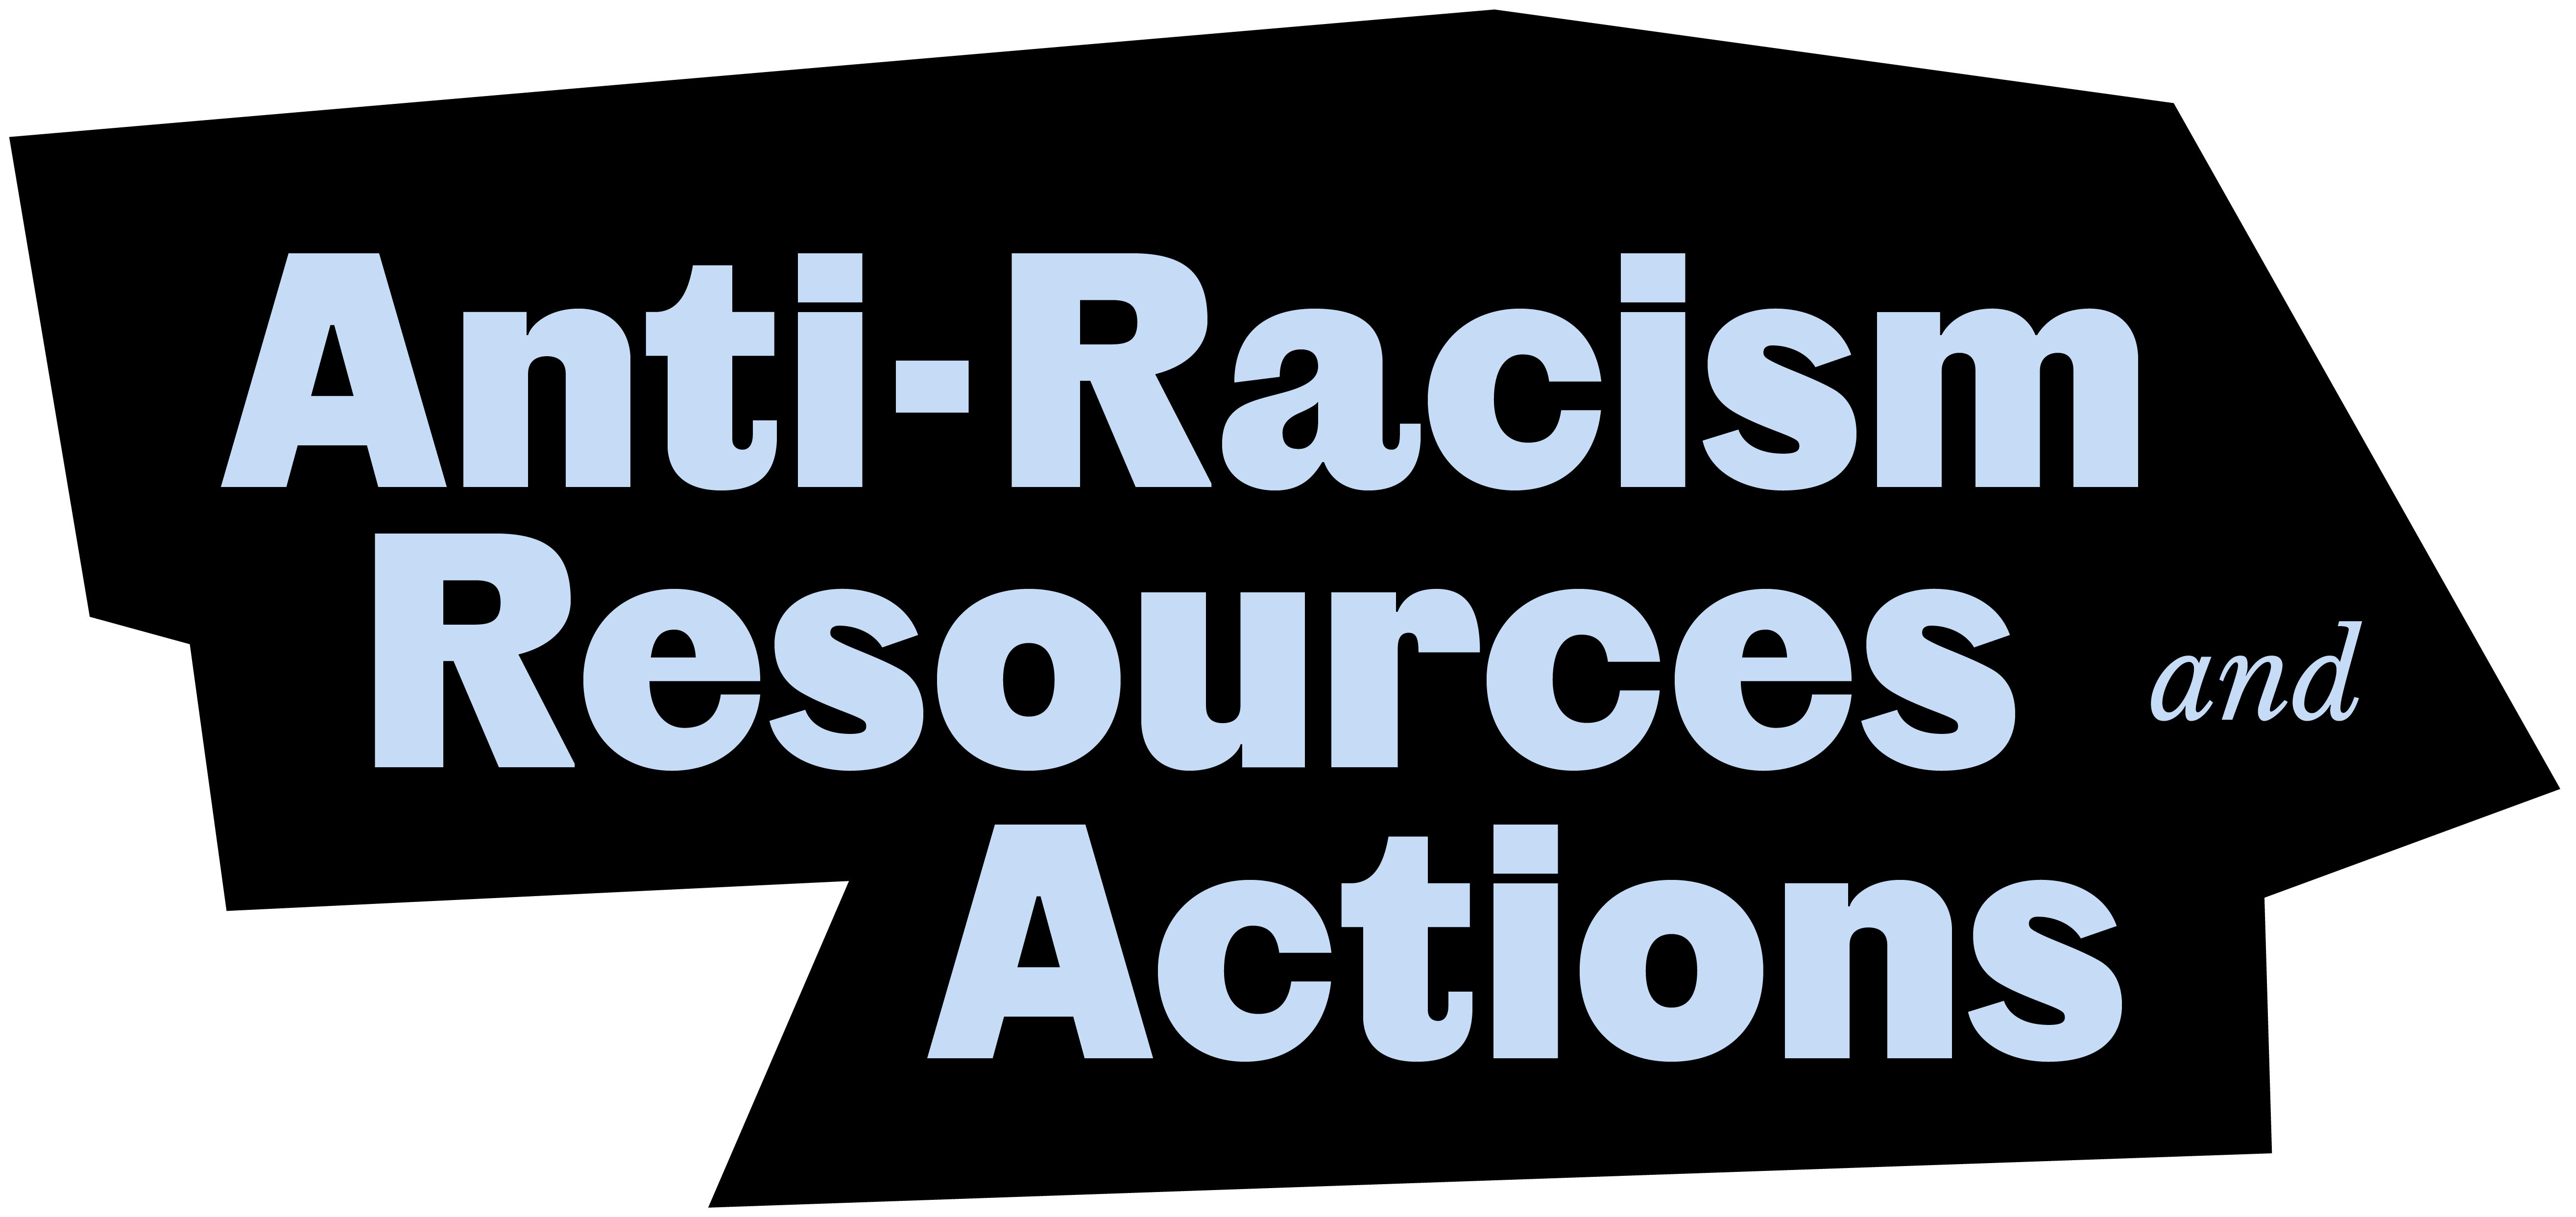 Anti-racism resources and actions